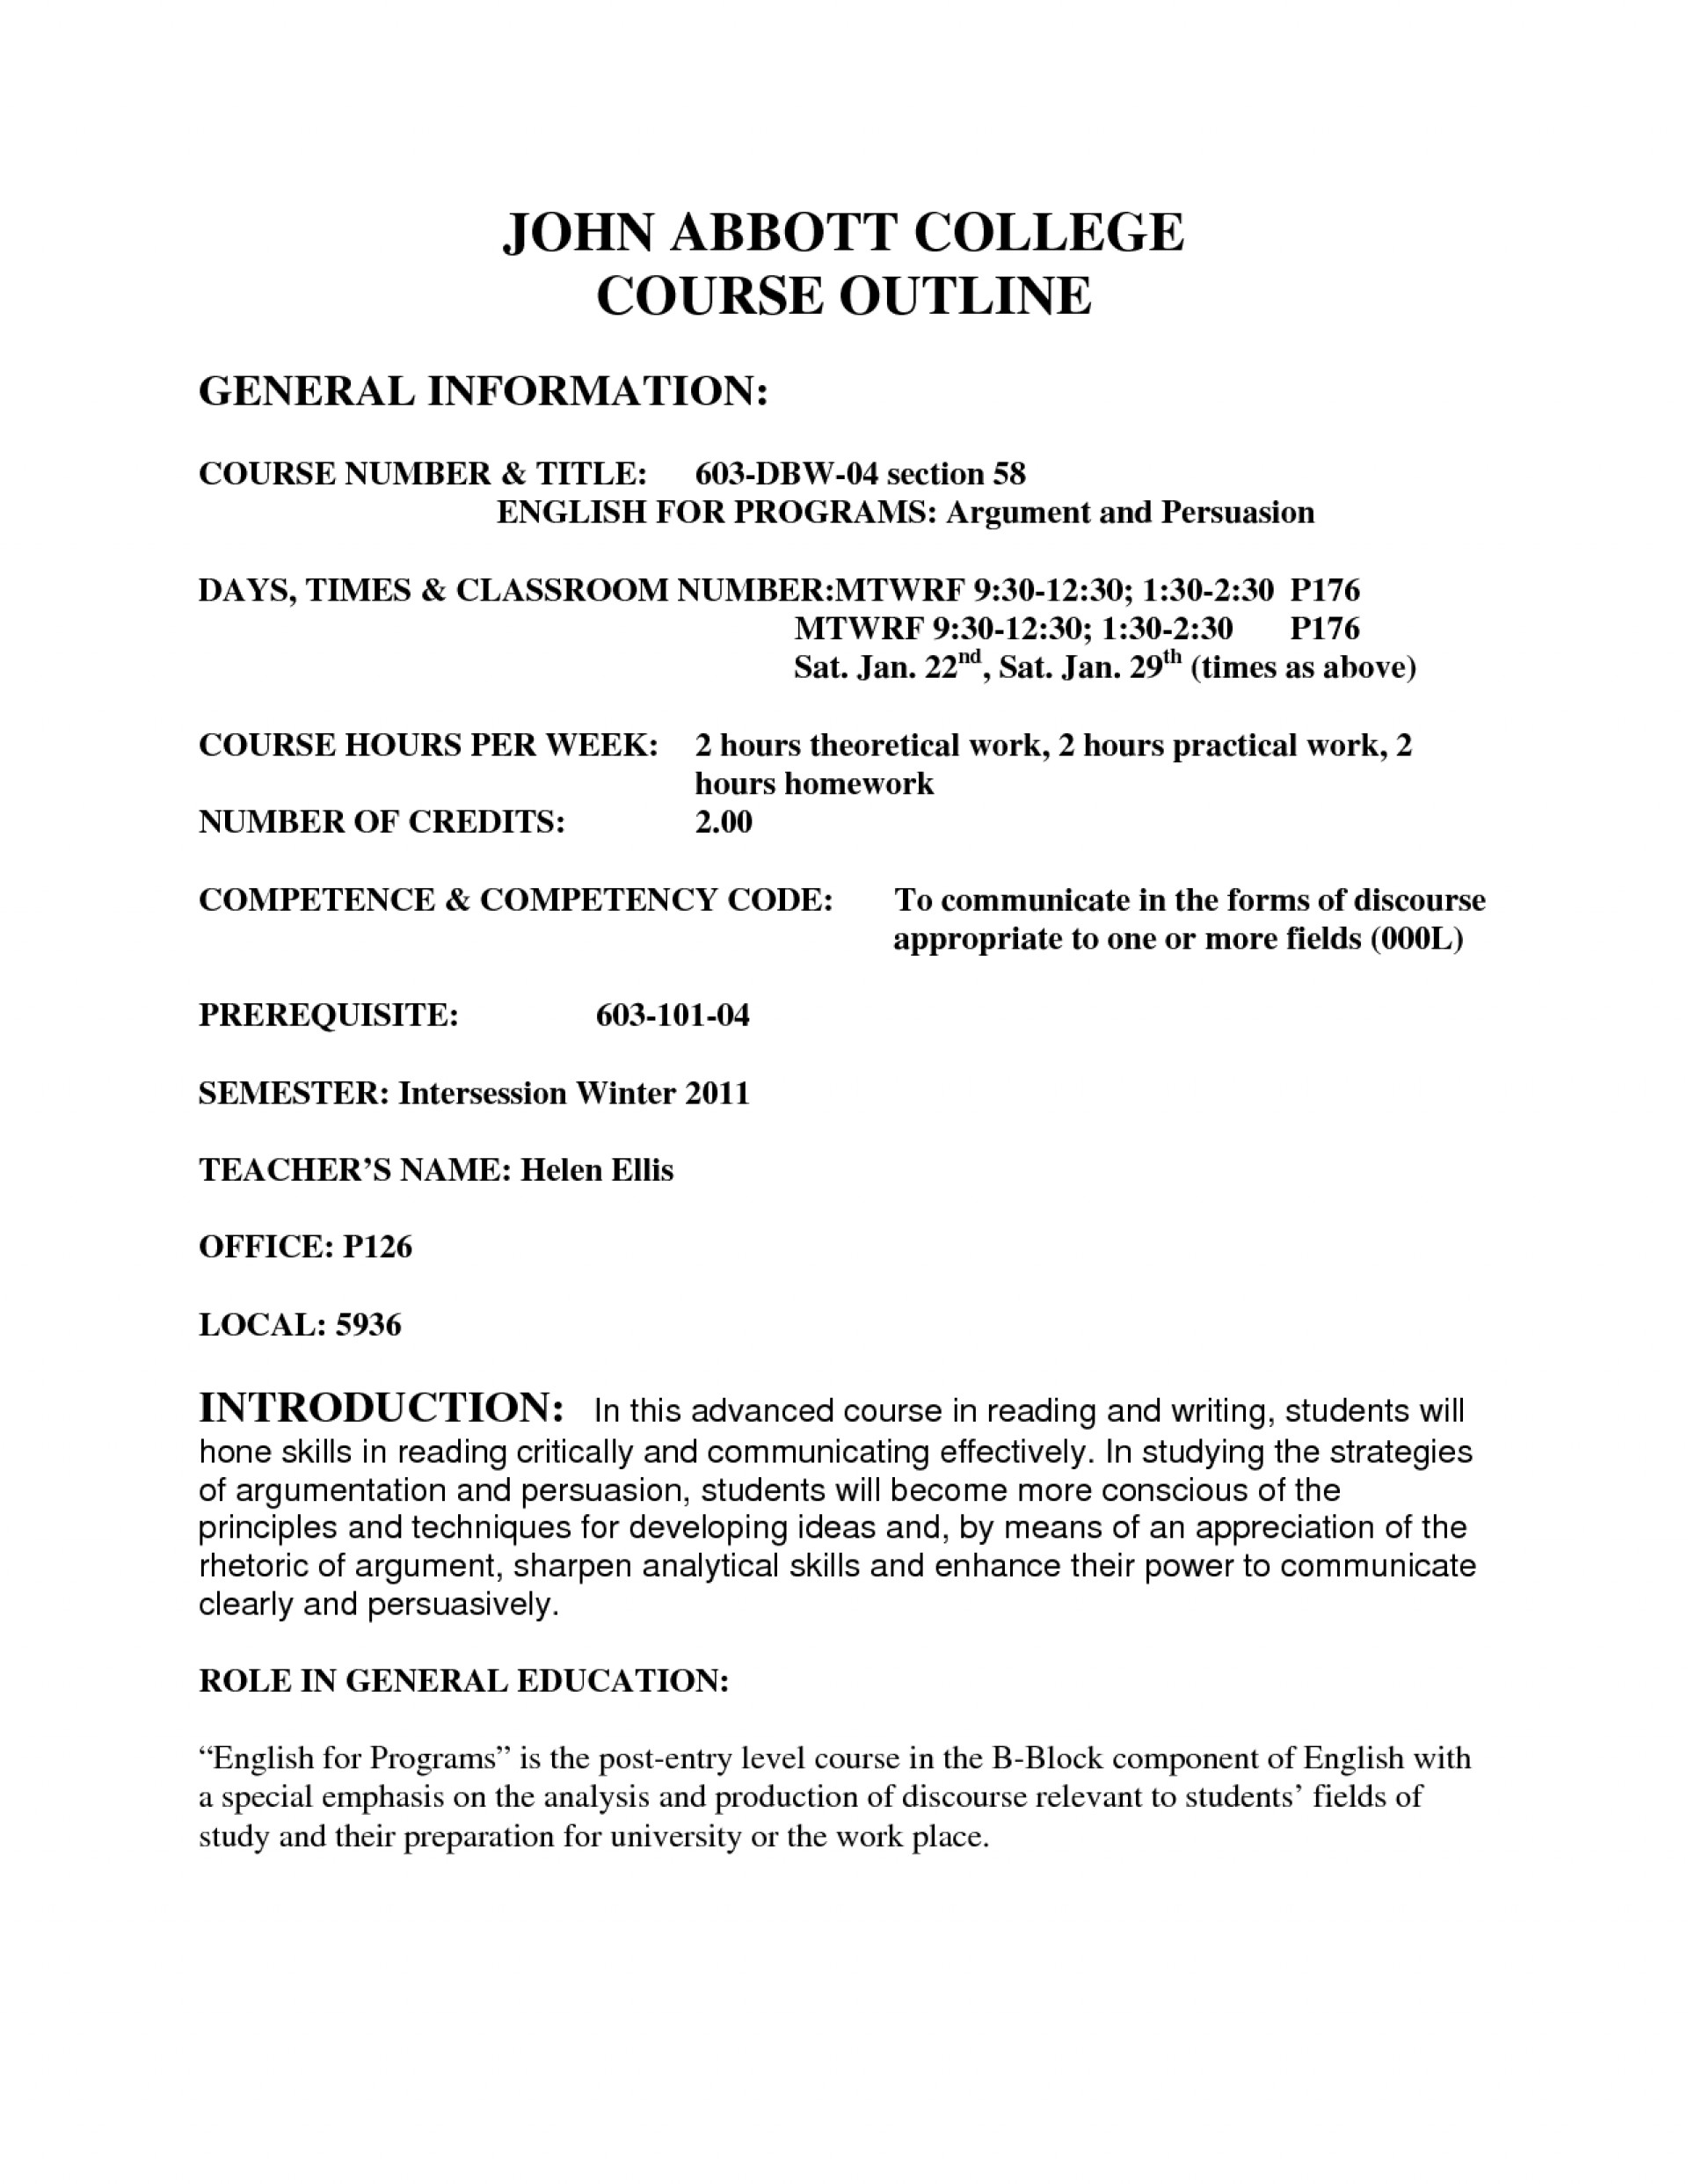 002 How To Do College Level Essay Self Introduction Electoral Paragraph Education Entrance Life Applications Best Introductions Exceptional Persuasive Examples Argumentative Topics 1920